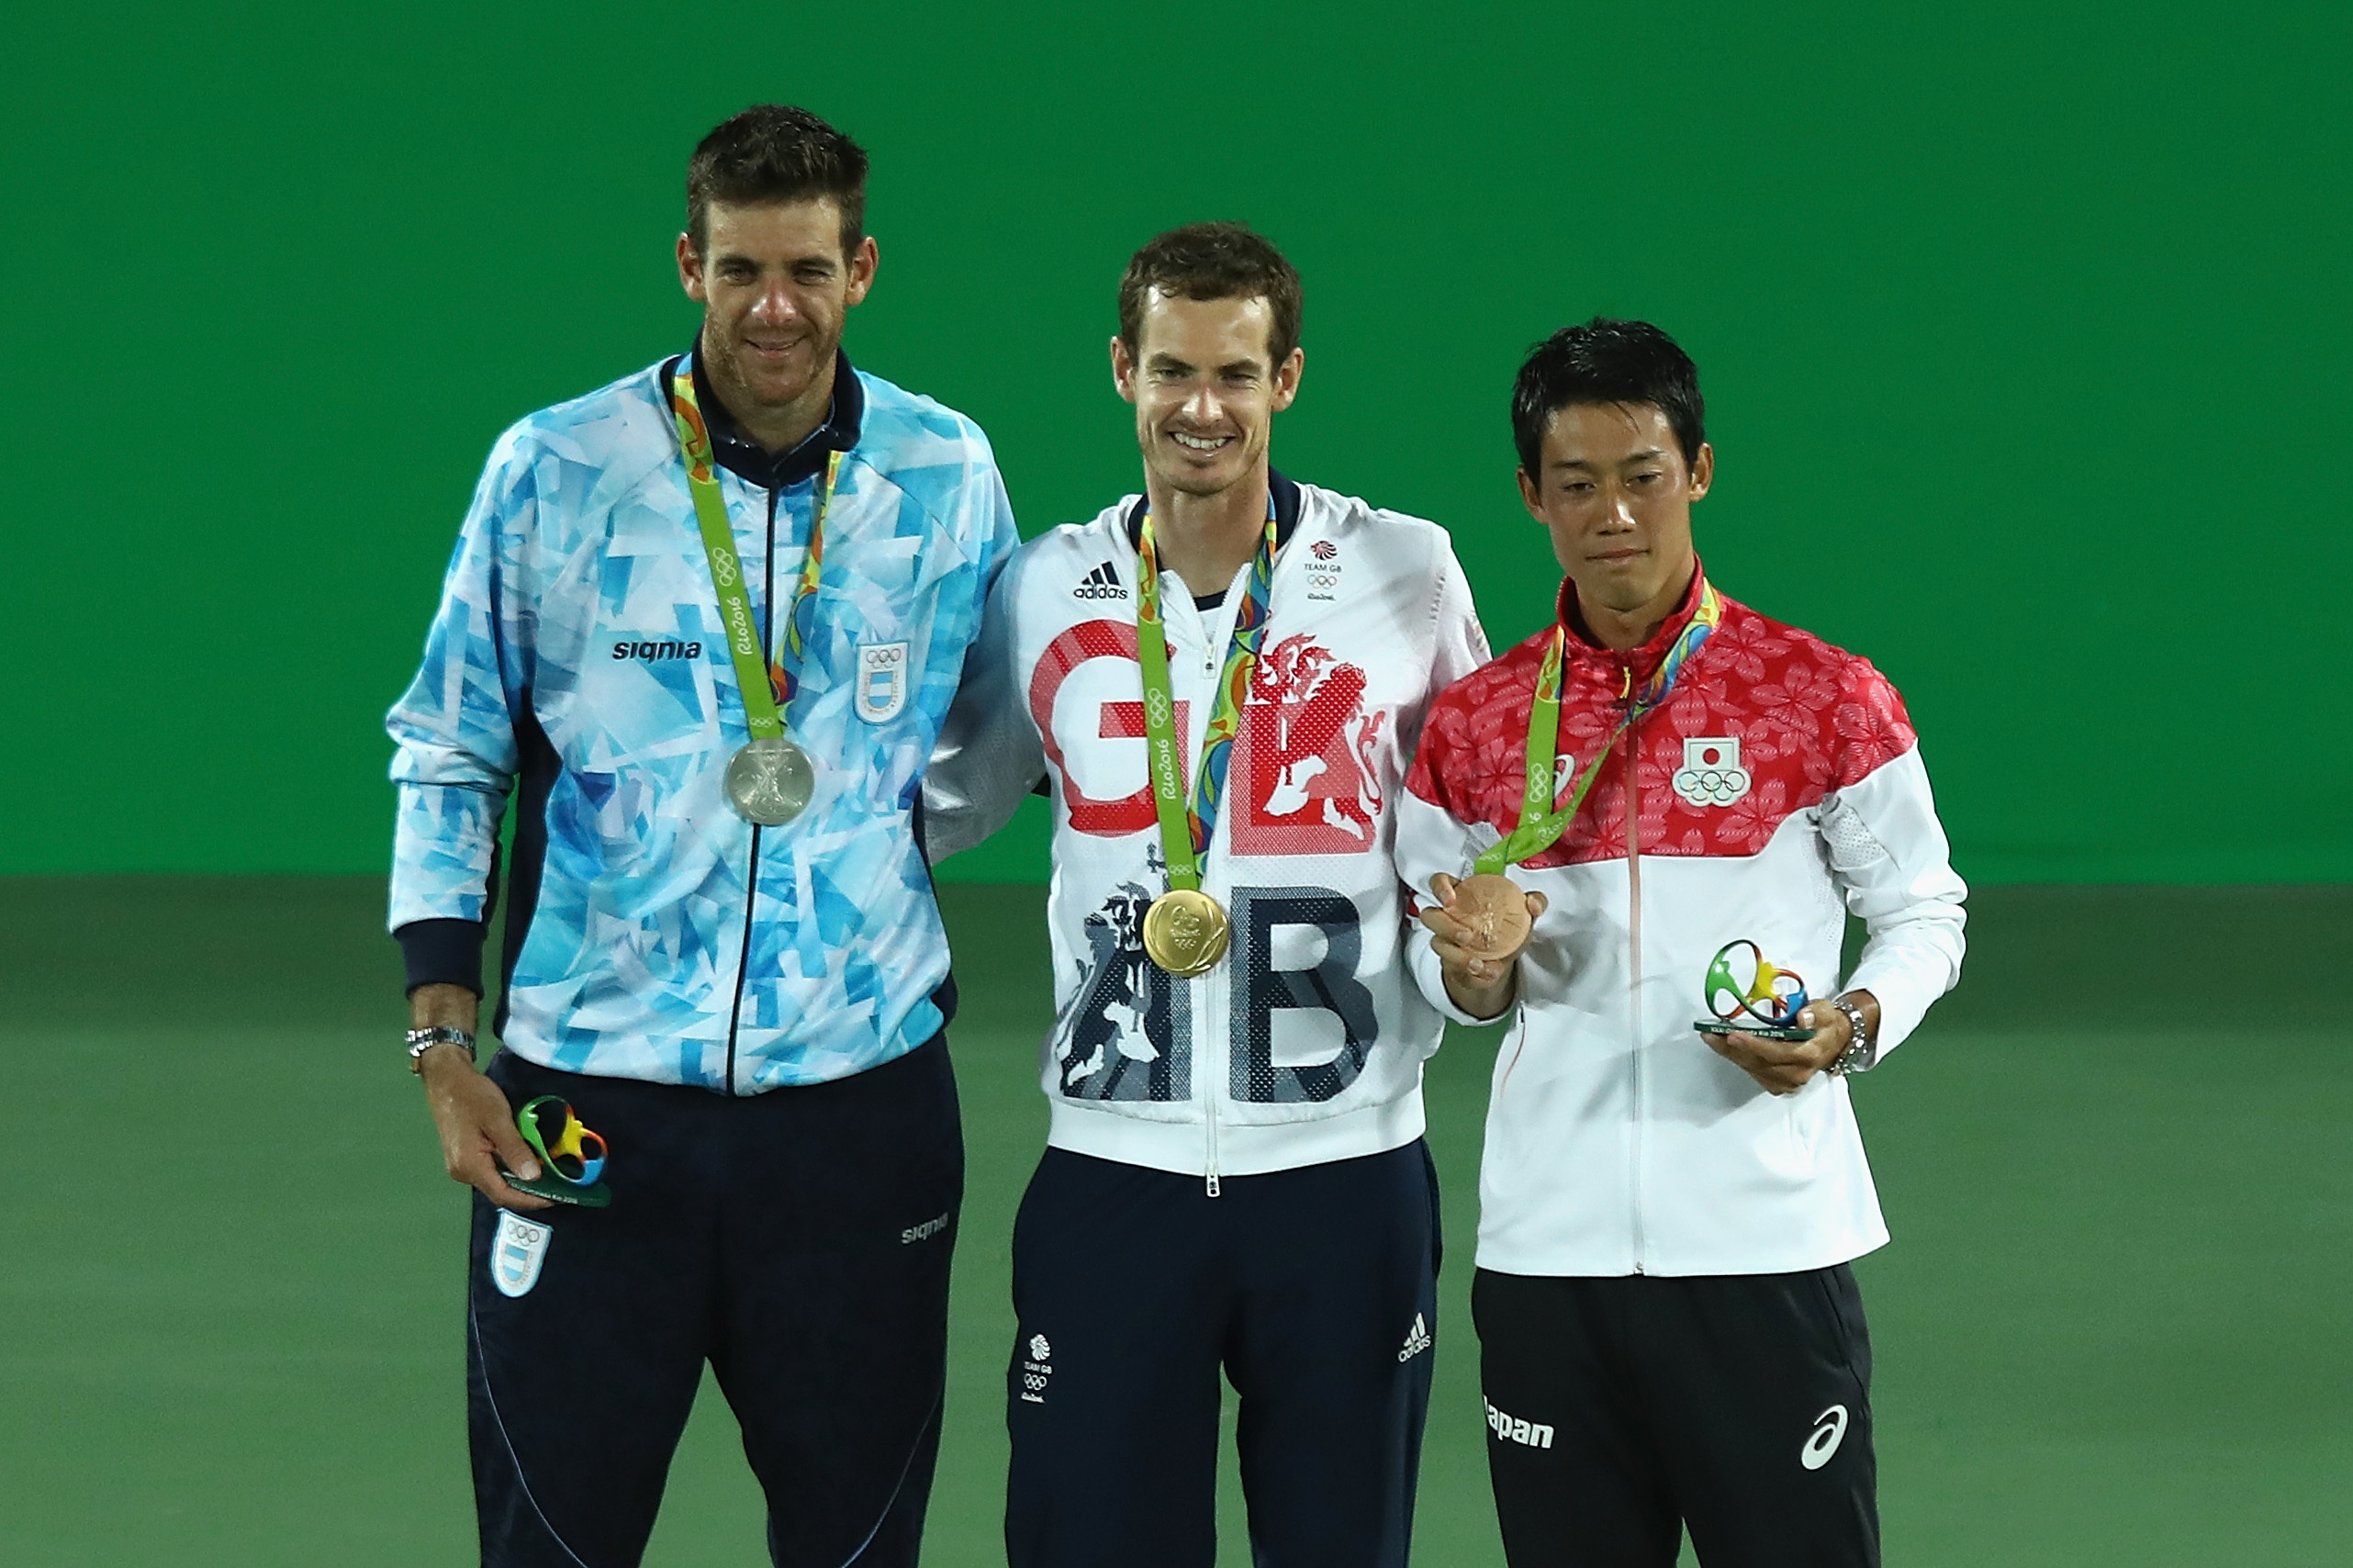 Double Olympic gold medallist Andy Murray